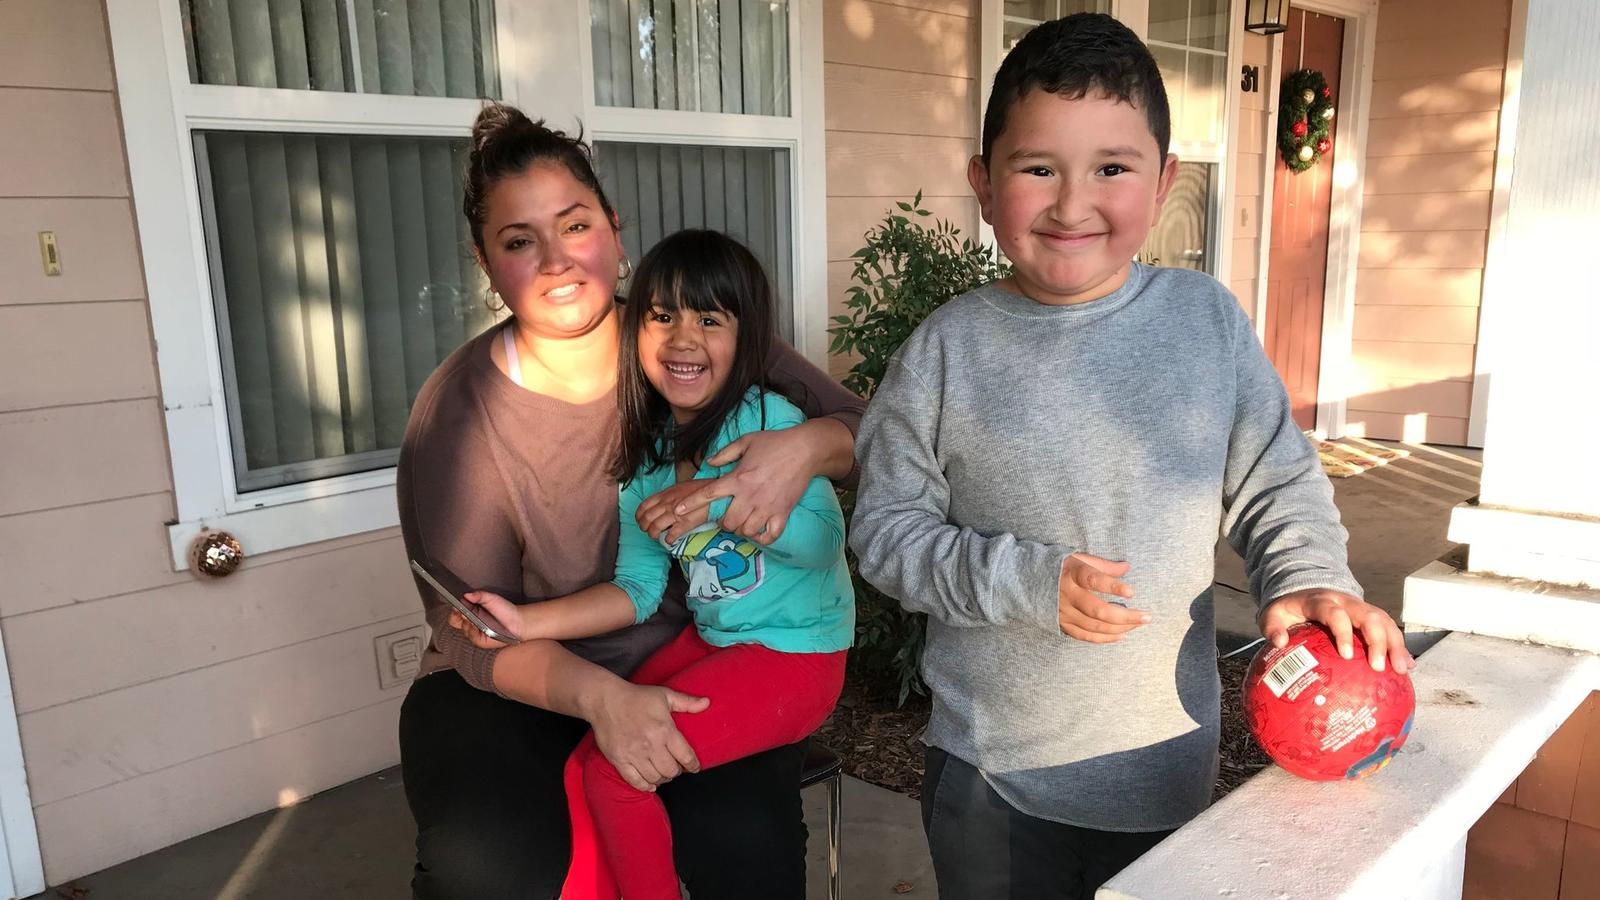 After spending two months sleeping in a friend's living room, the Alvarez family of Calistoga, who lost their home and their jobs, found a rent-subsidized condo in Cotati. Here, Claudia, 34, sits with children Sofia, 4, and Steven, 7, on their new front porch. (Robin Abcarian / Los Angeles Times)